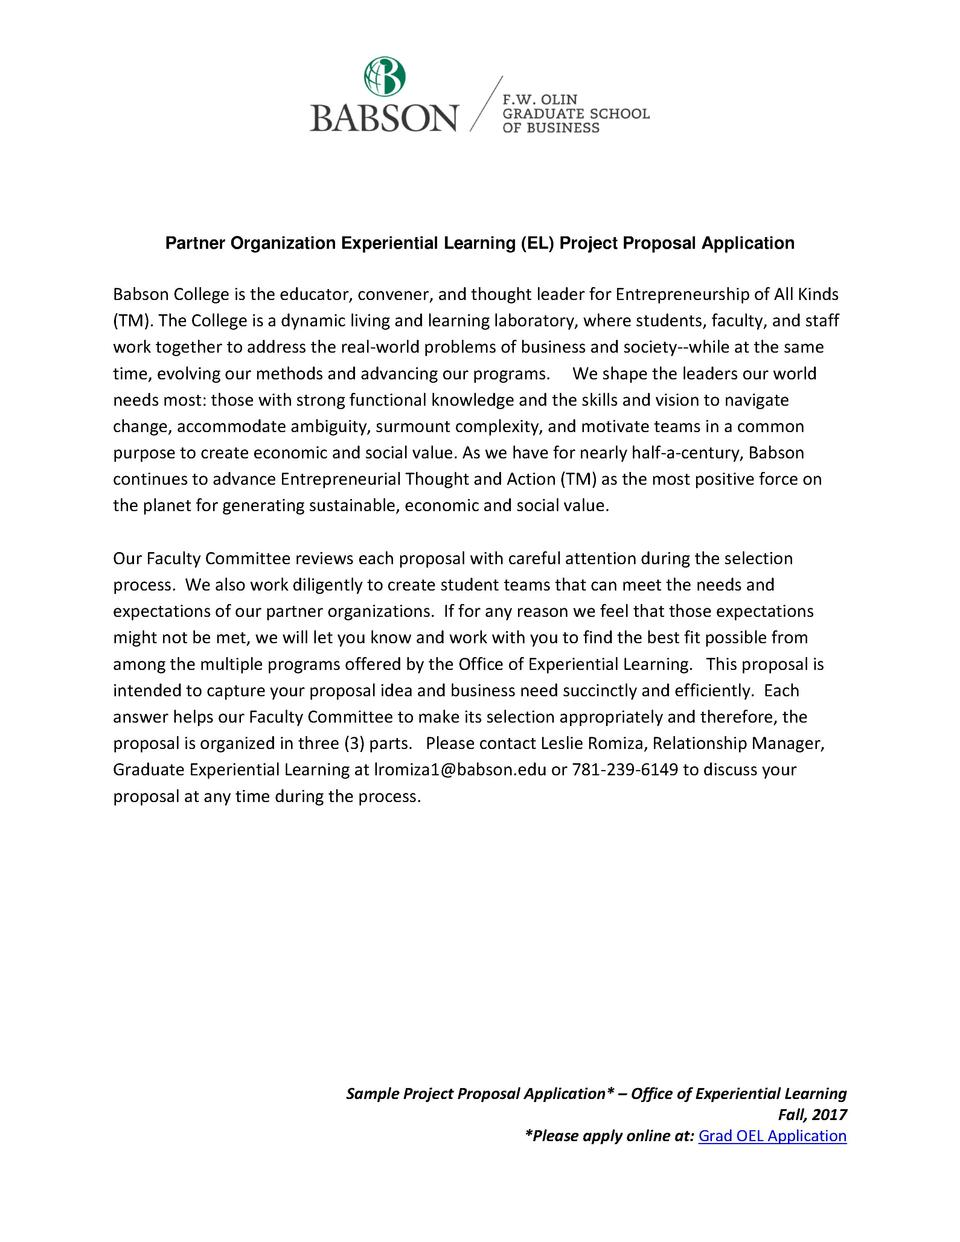 Partner Organization Experiential Learning  EL  Project Proposal Application  Babson College is the educator, convener, an...